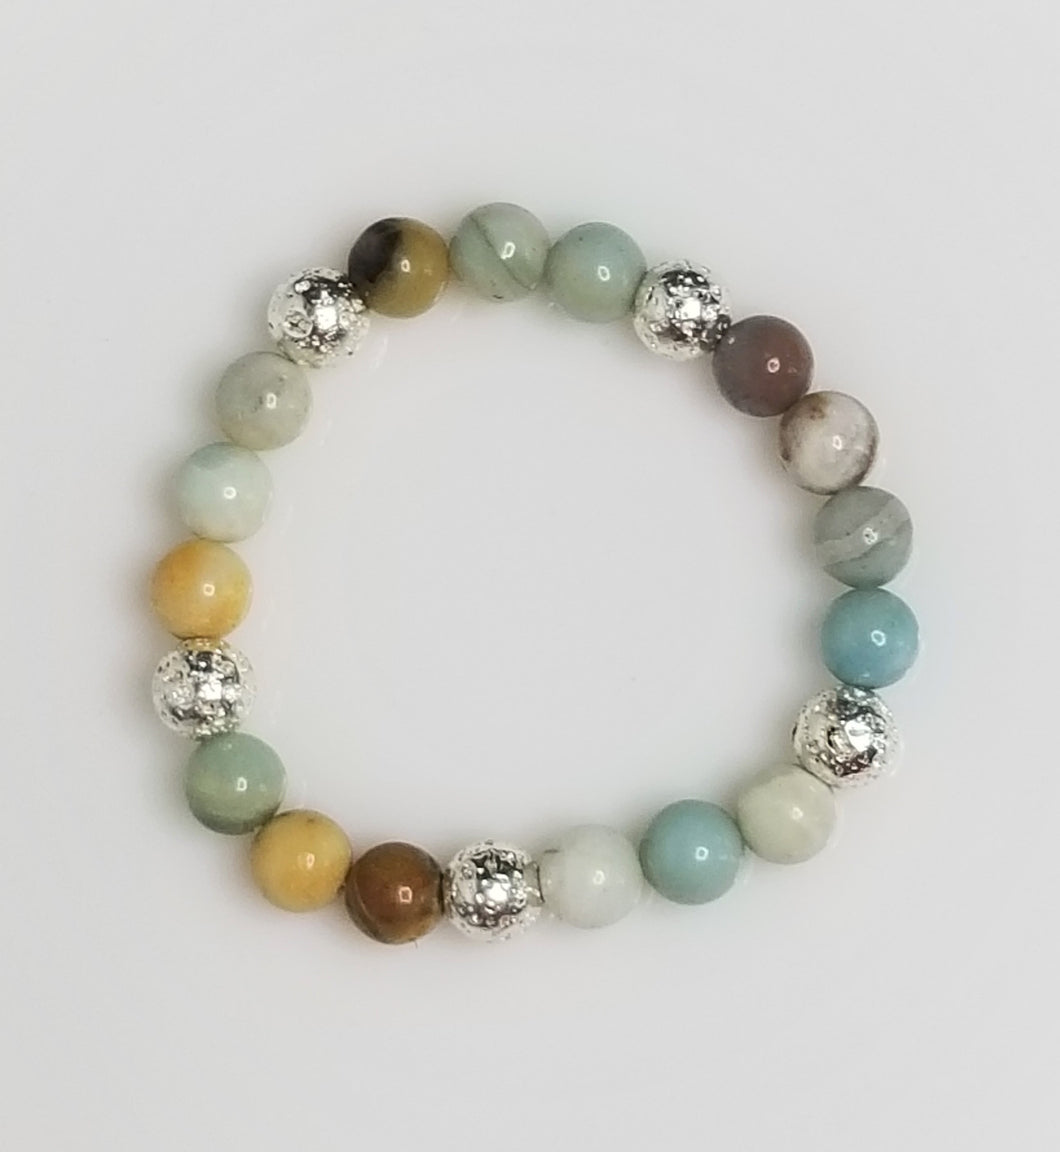 Amazonite stone beads with silver metal plated lava beads bracelet